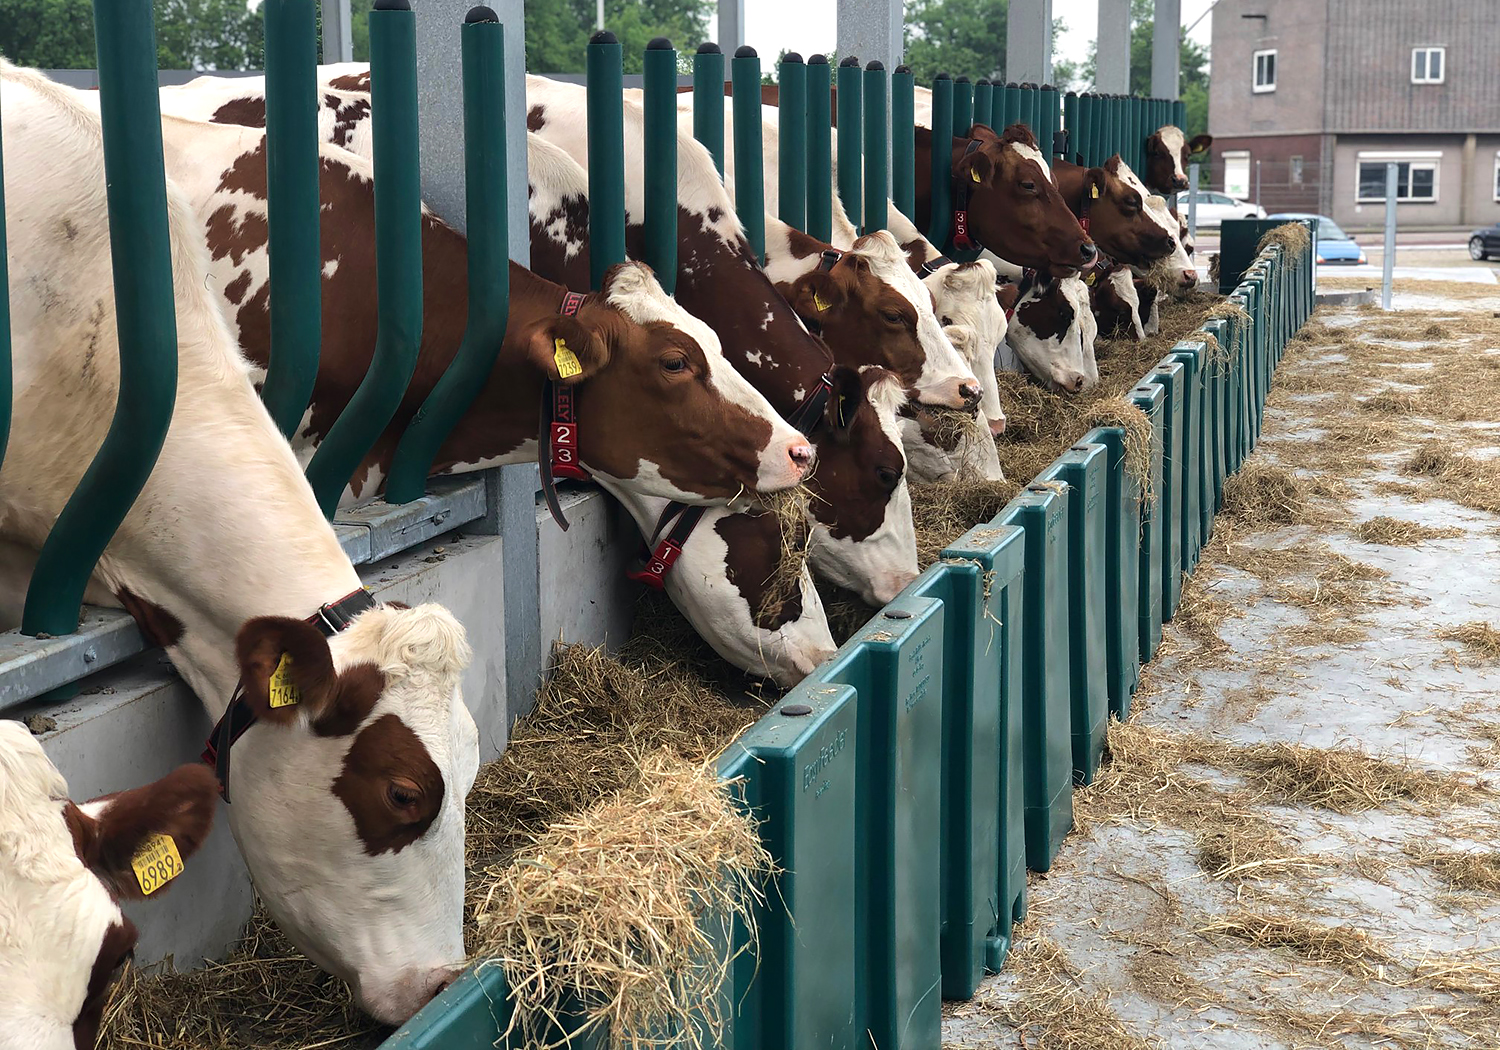 Several brown and white cows eating